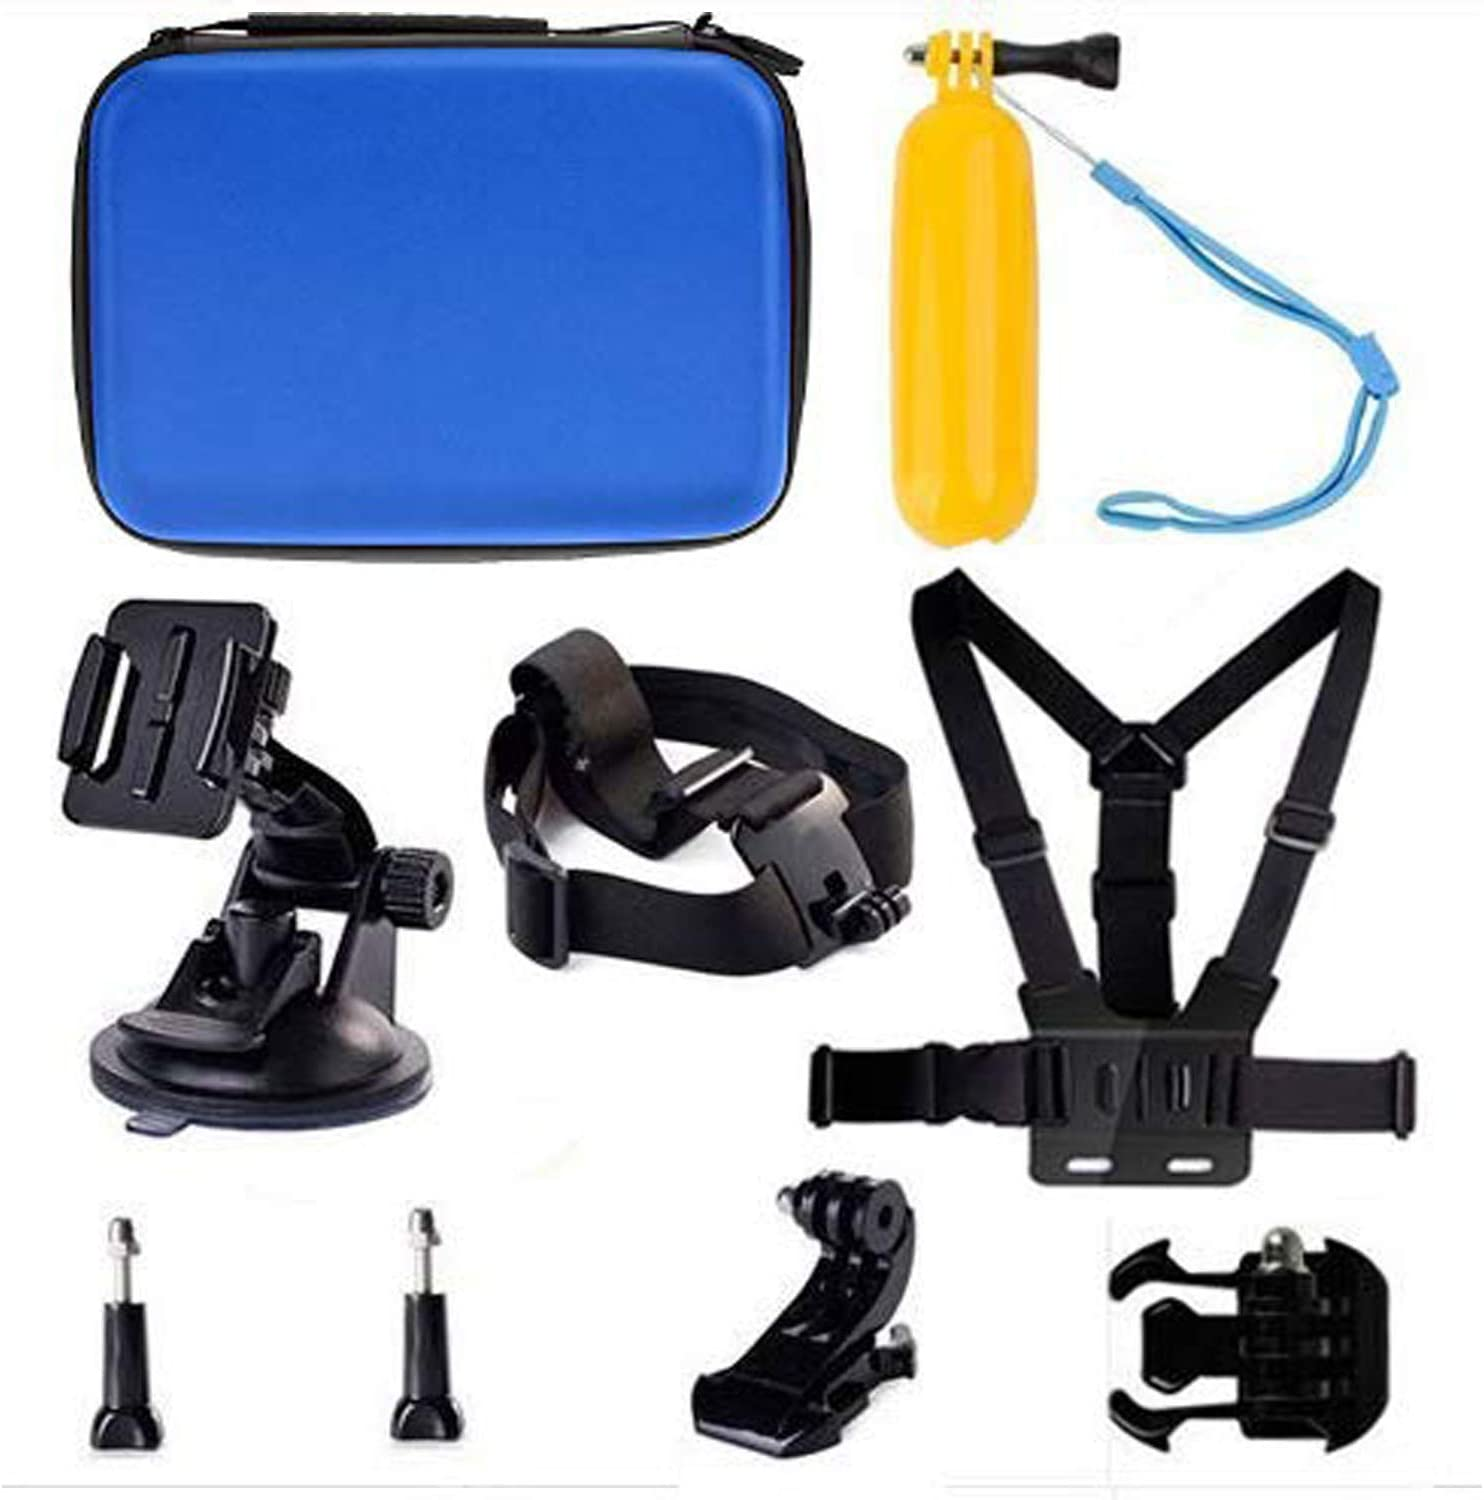 Navitech 9 in 1 Action Camera Accessory Combo Kit and Rugged Blue Storage Case Compatible with The Kaiser Baas/ X400 4K Ultra HD Action Camera Black